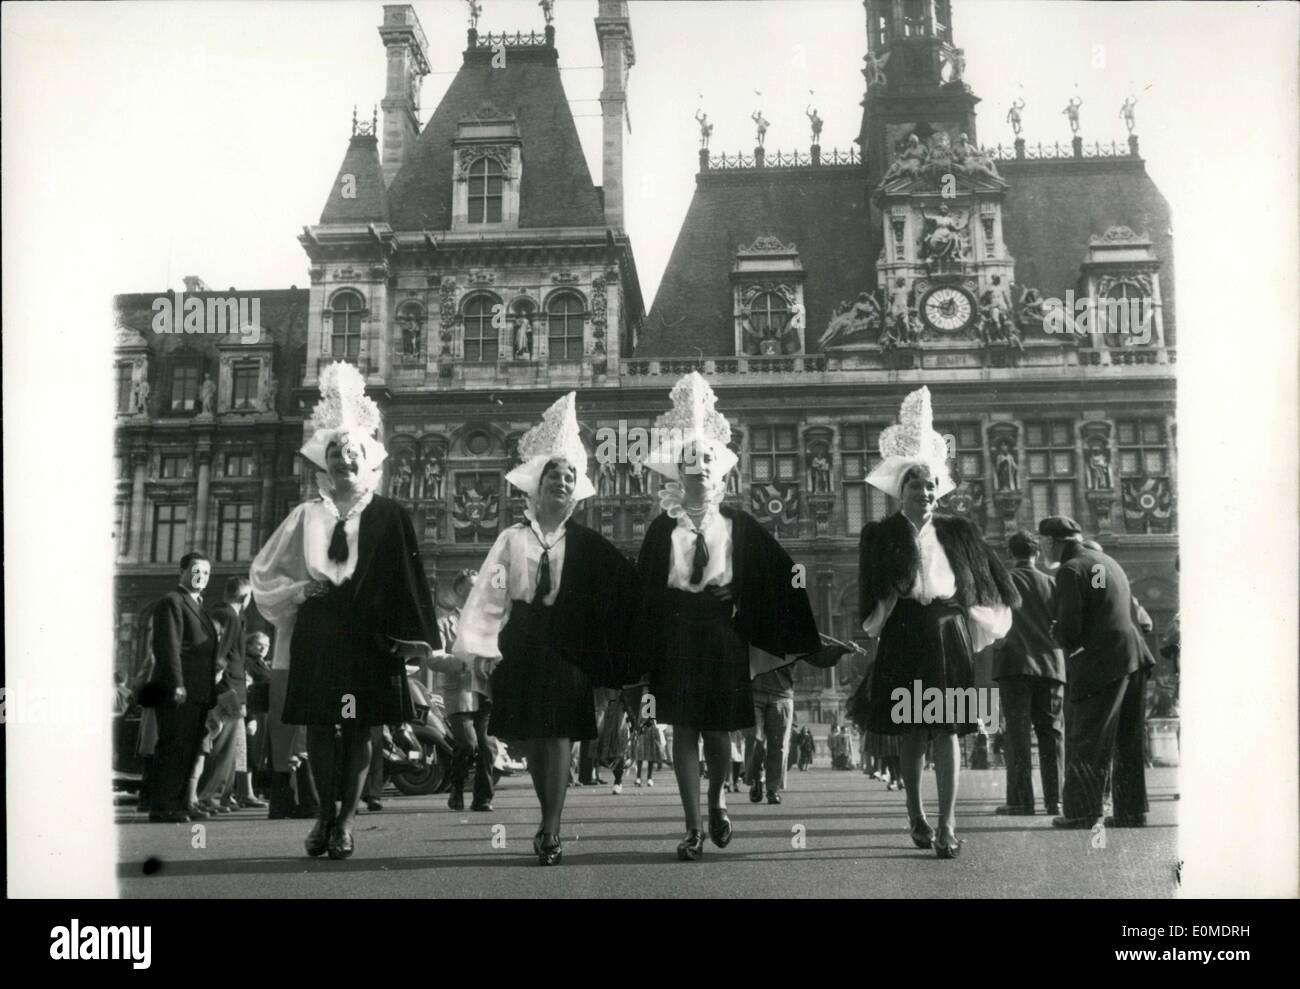 Oct. 31, 1954 - Folklore Parade at the Hotel de Ville - Stock Image